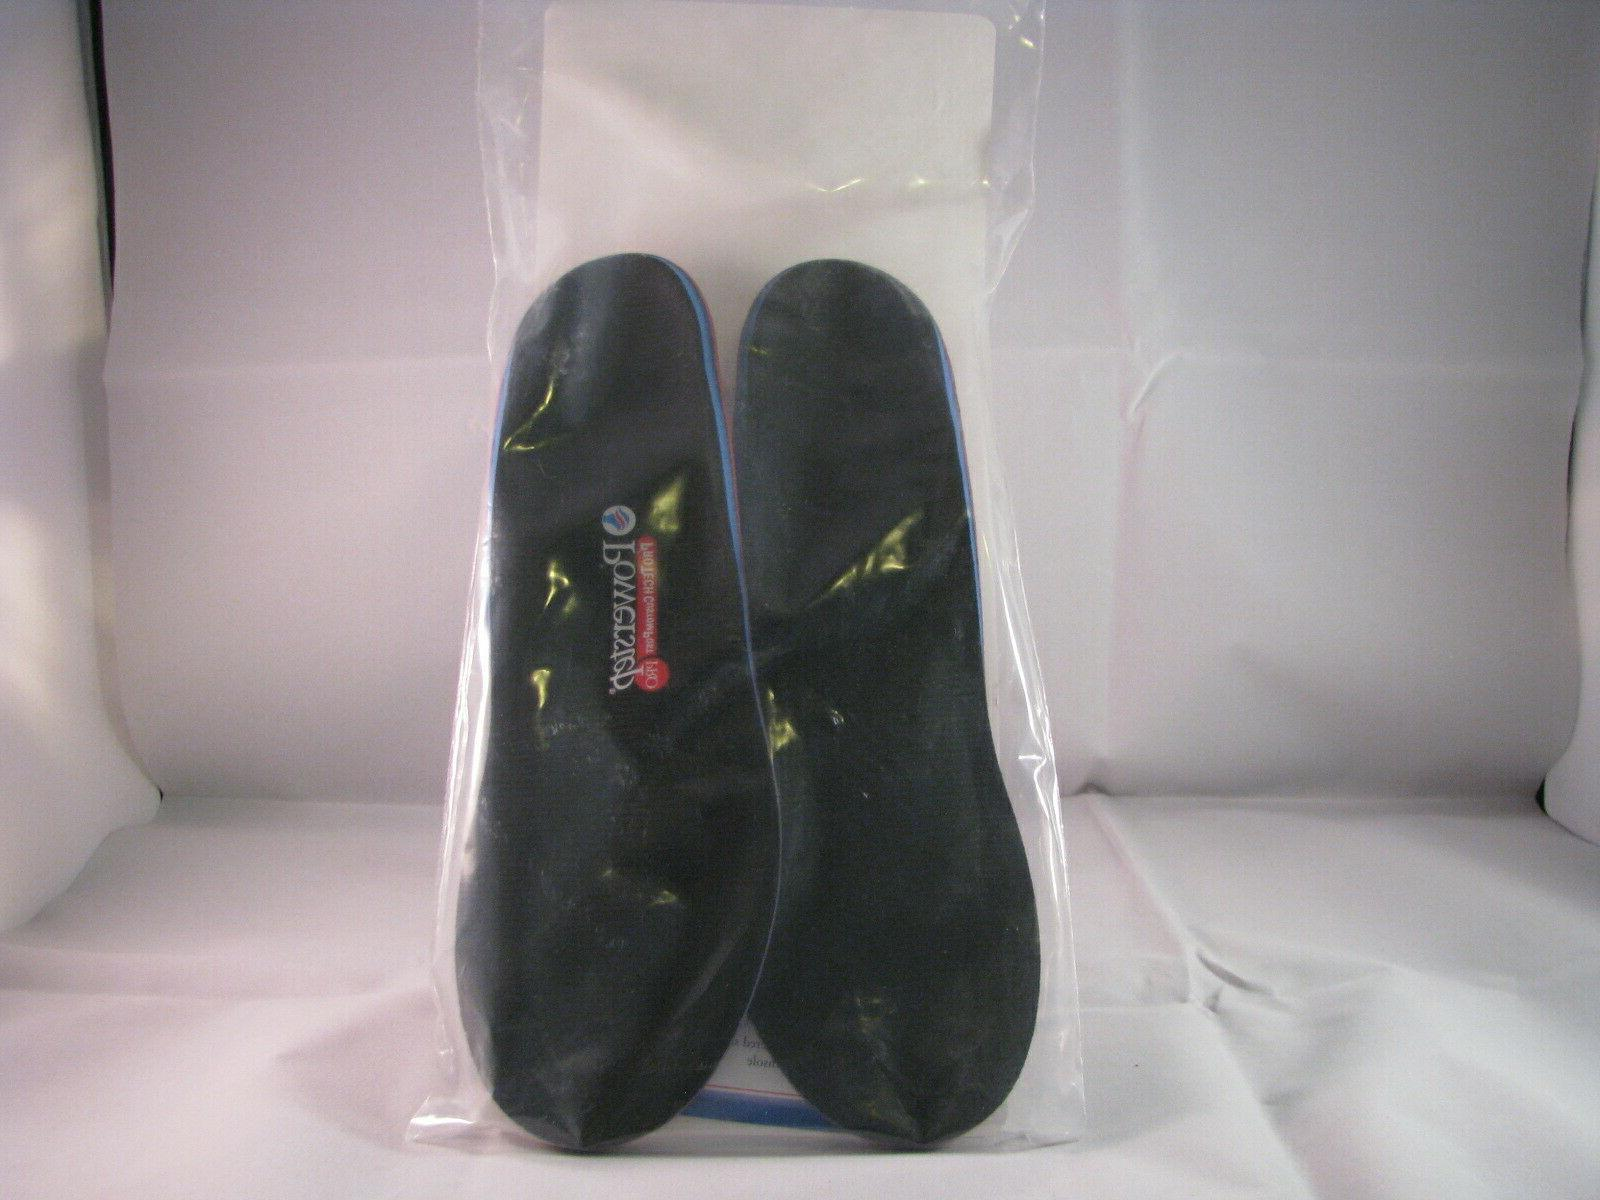 Powerstep Length Shoe Inserts M:5 - 1/2,